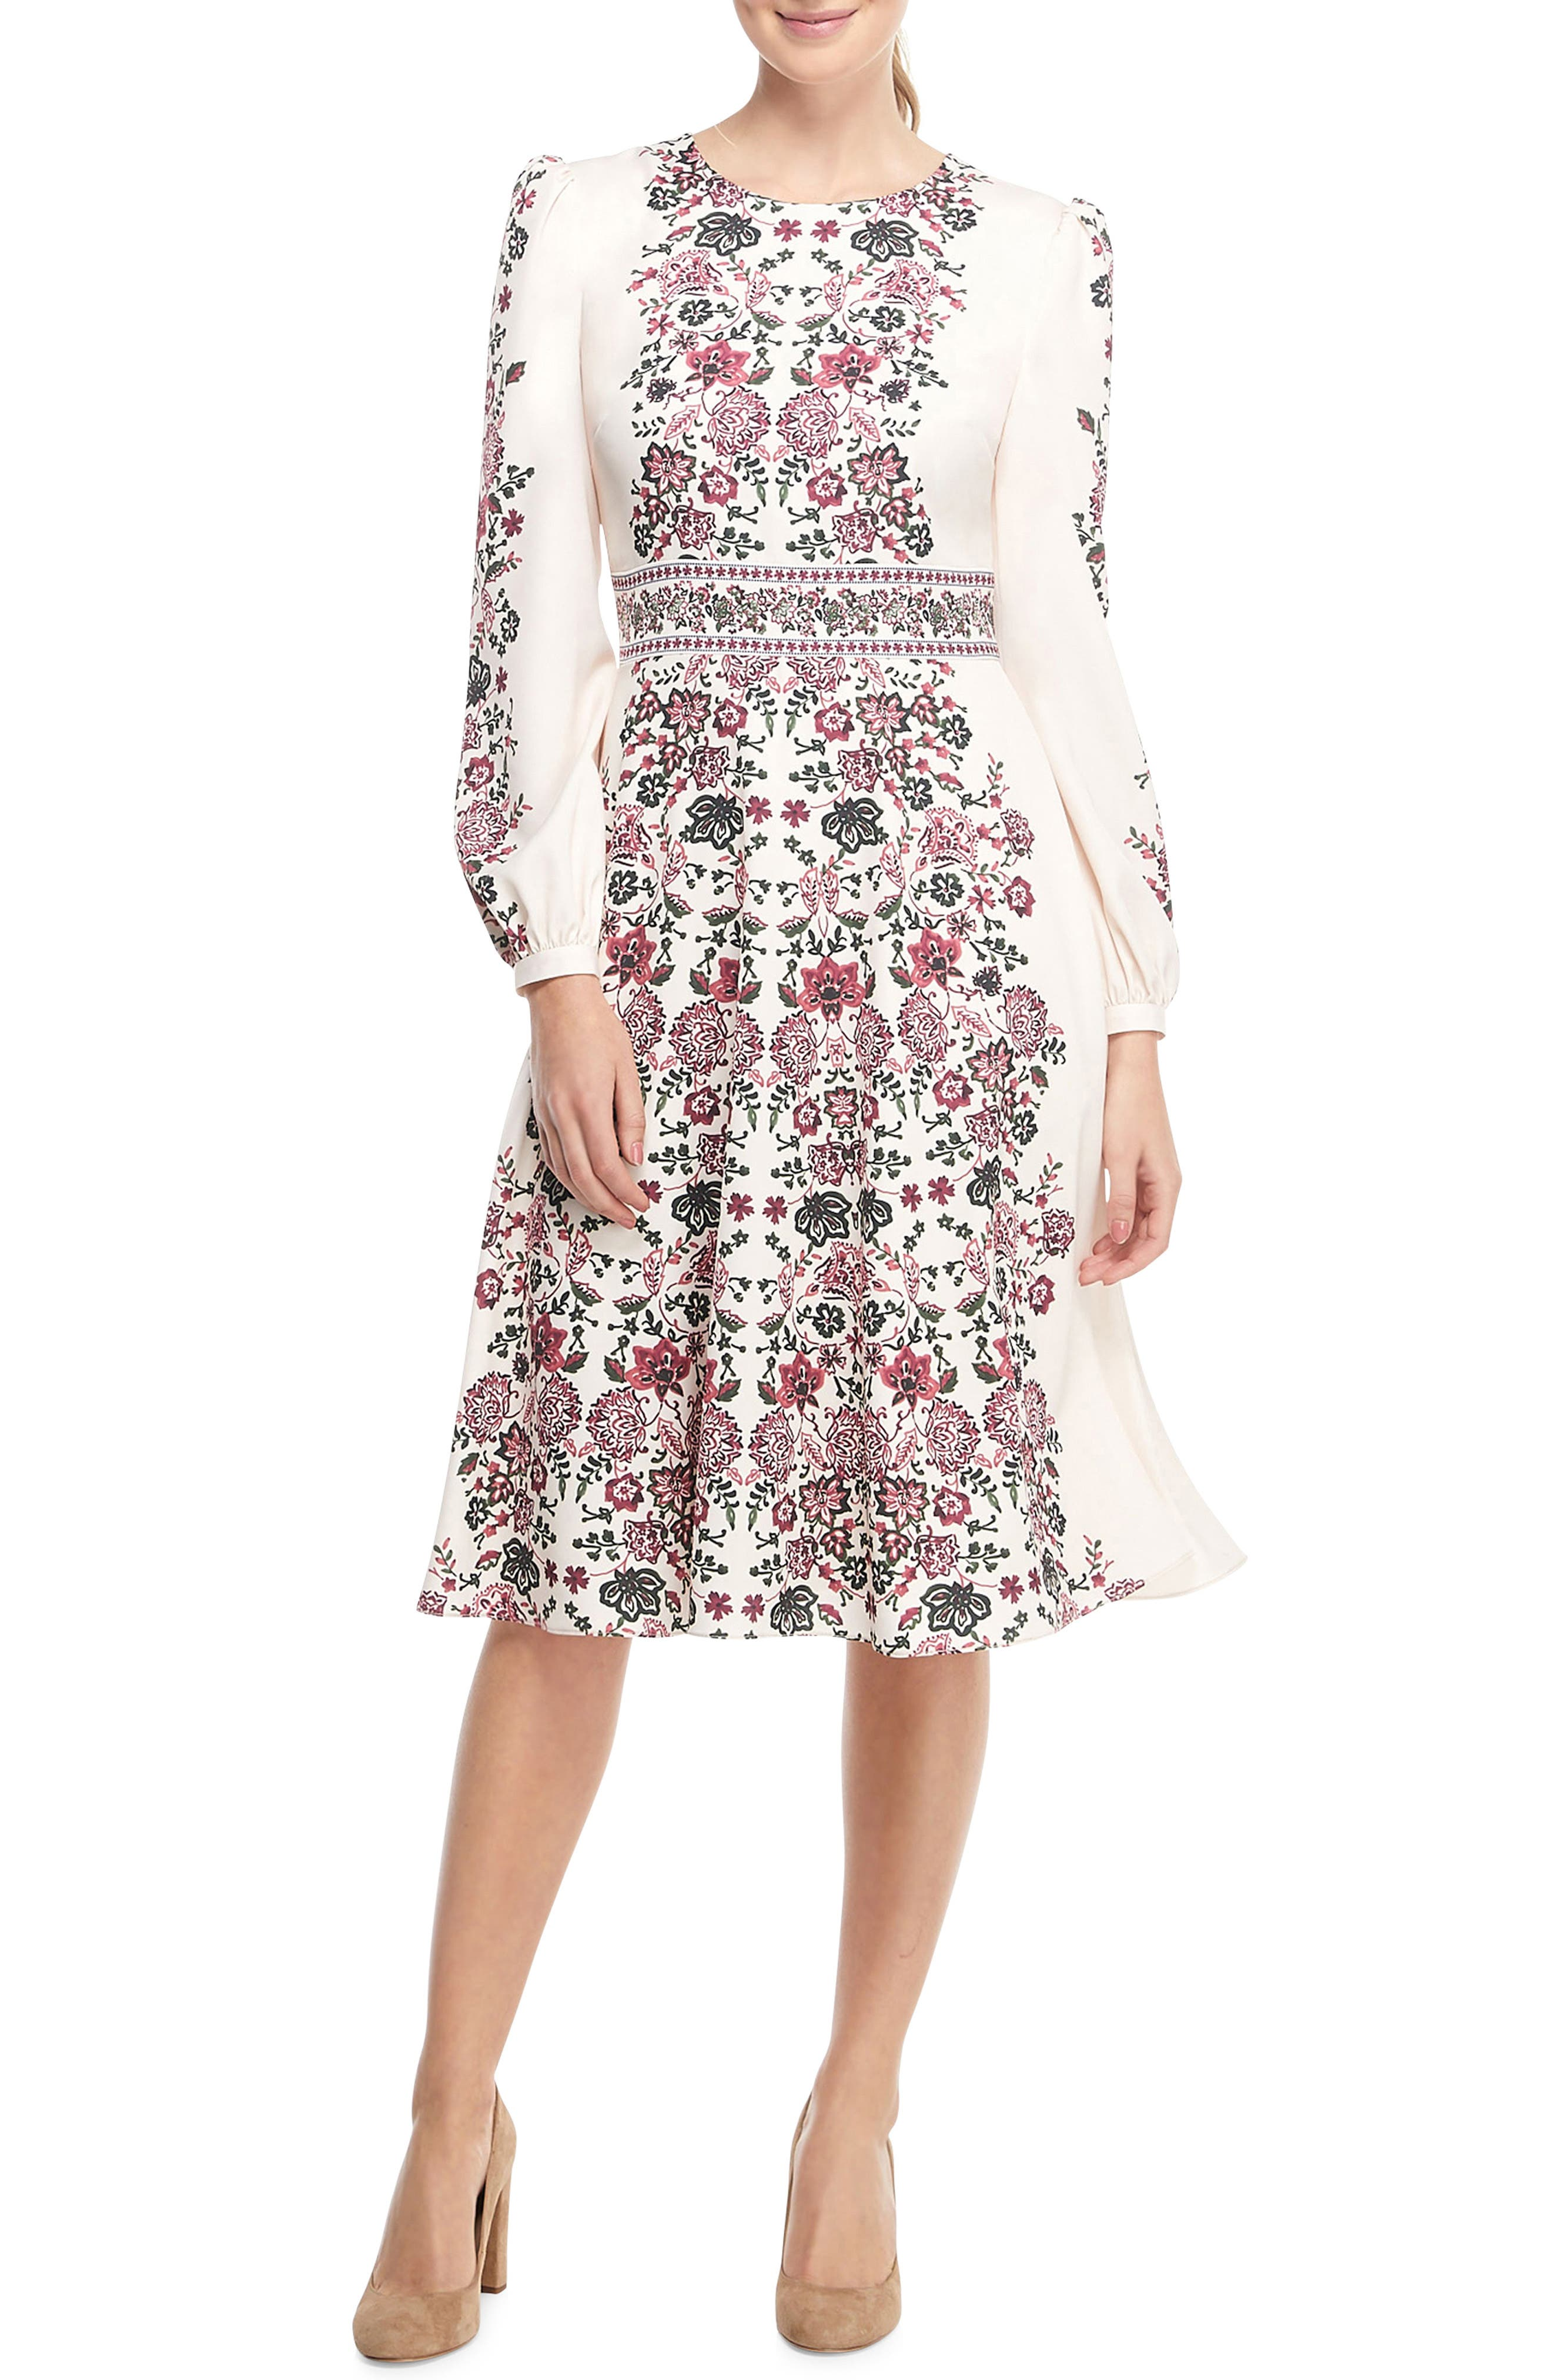 Gal Meets Glam Collection Chloe Floral Border Print A-Line Dress, Ivory